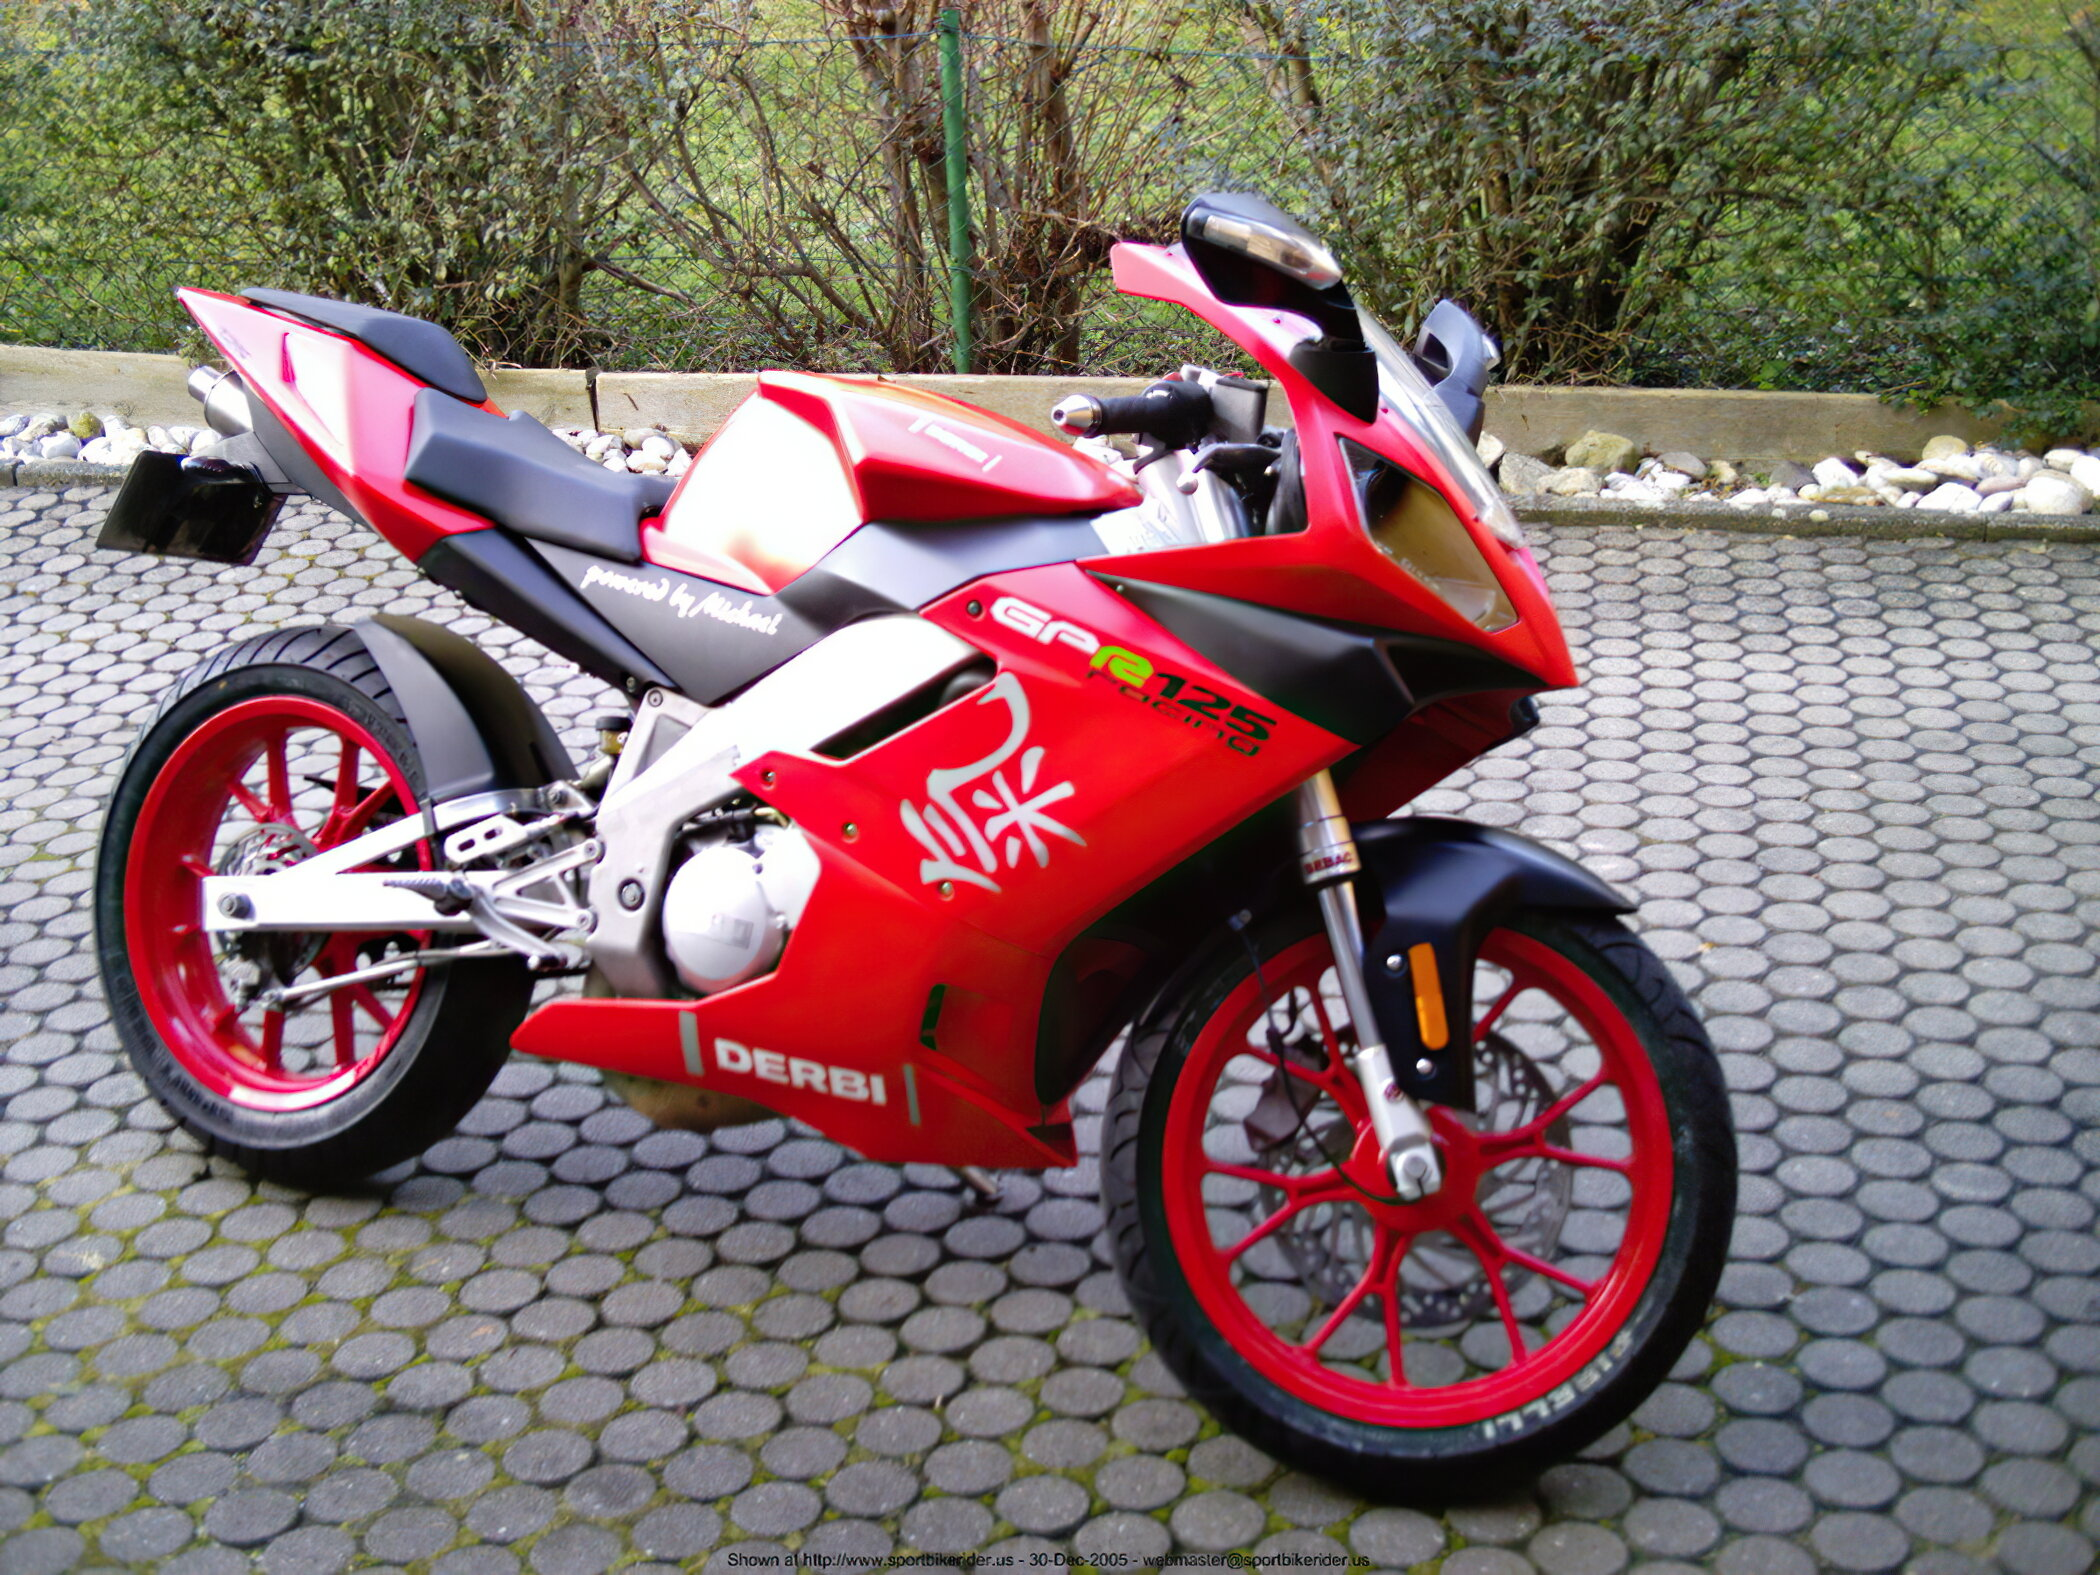 Derbi GPR Models - ID: 86813